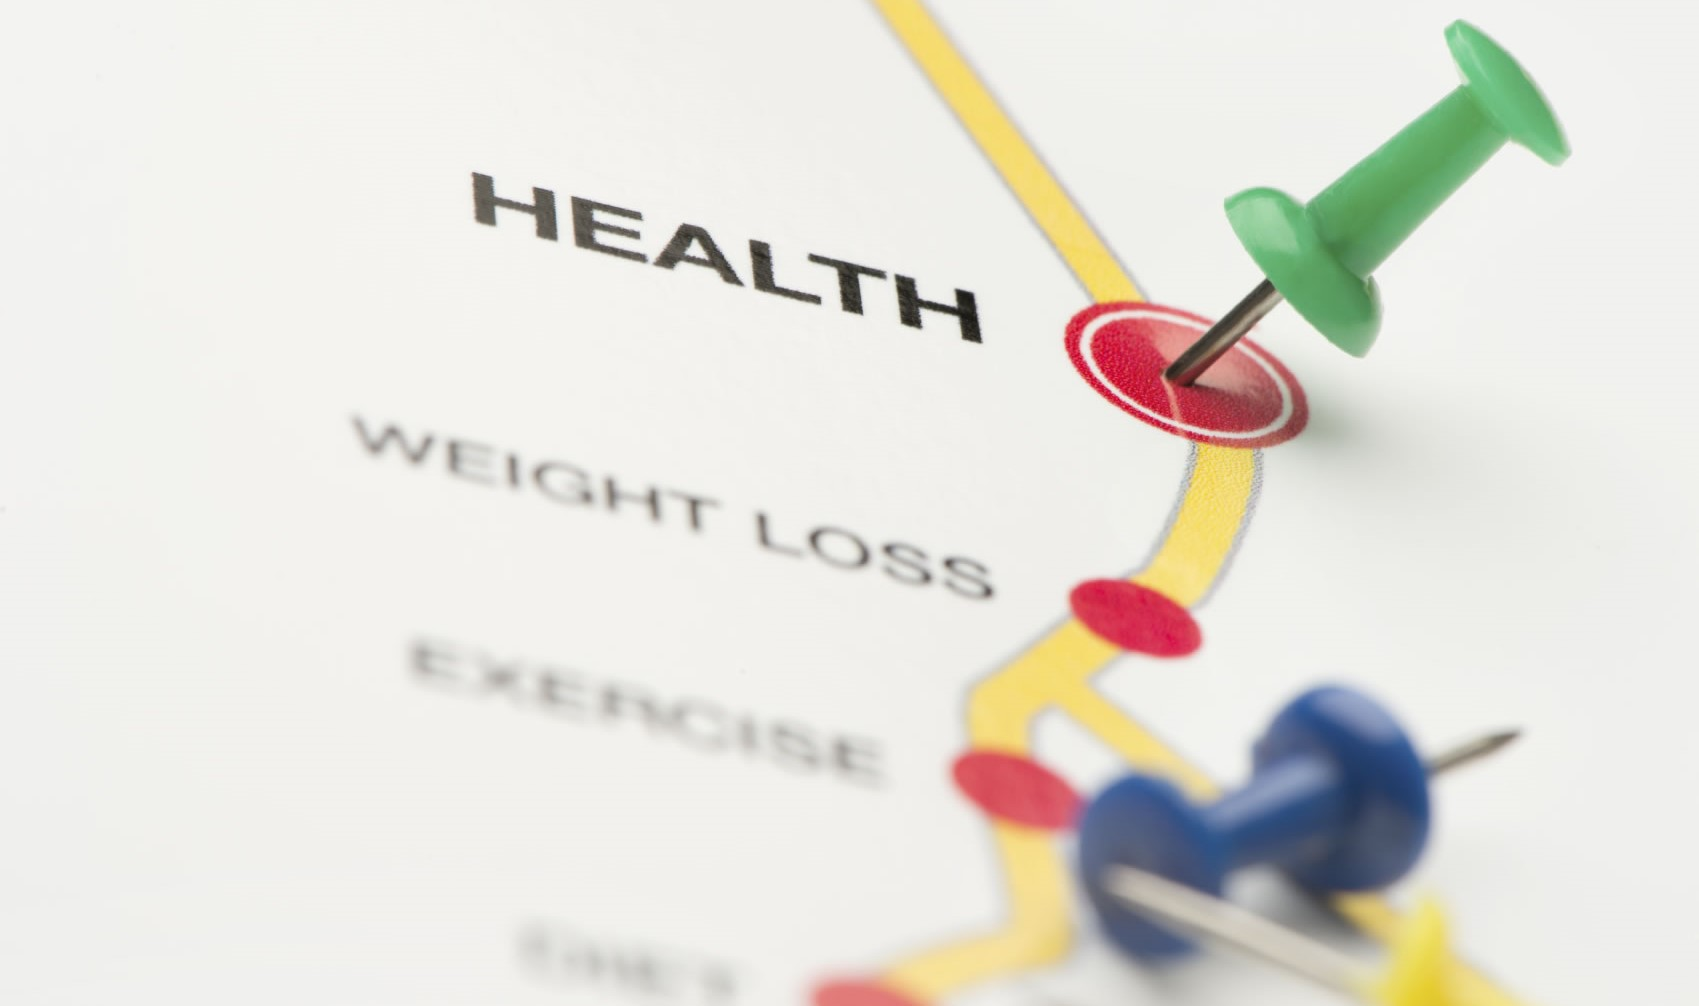 Weight loss pills are now possible